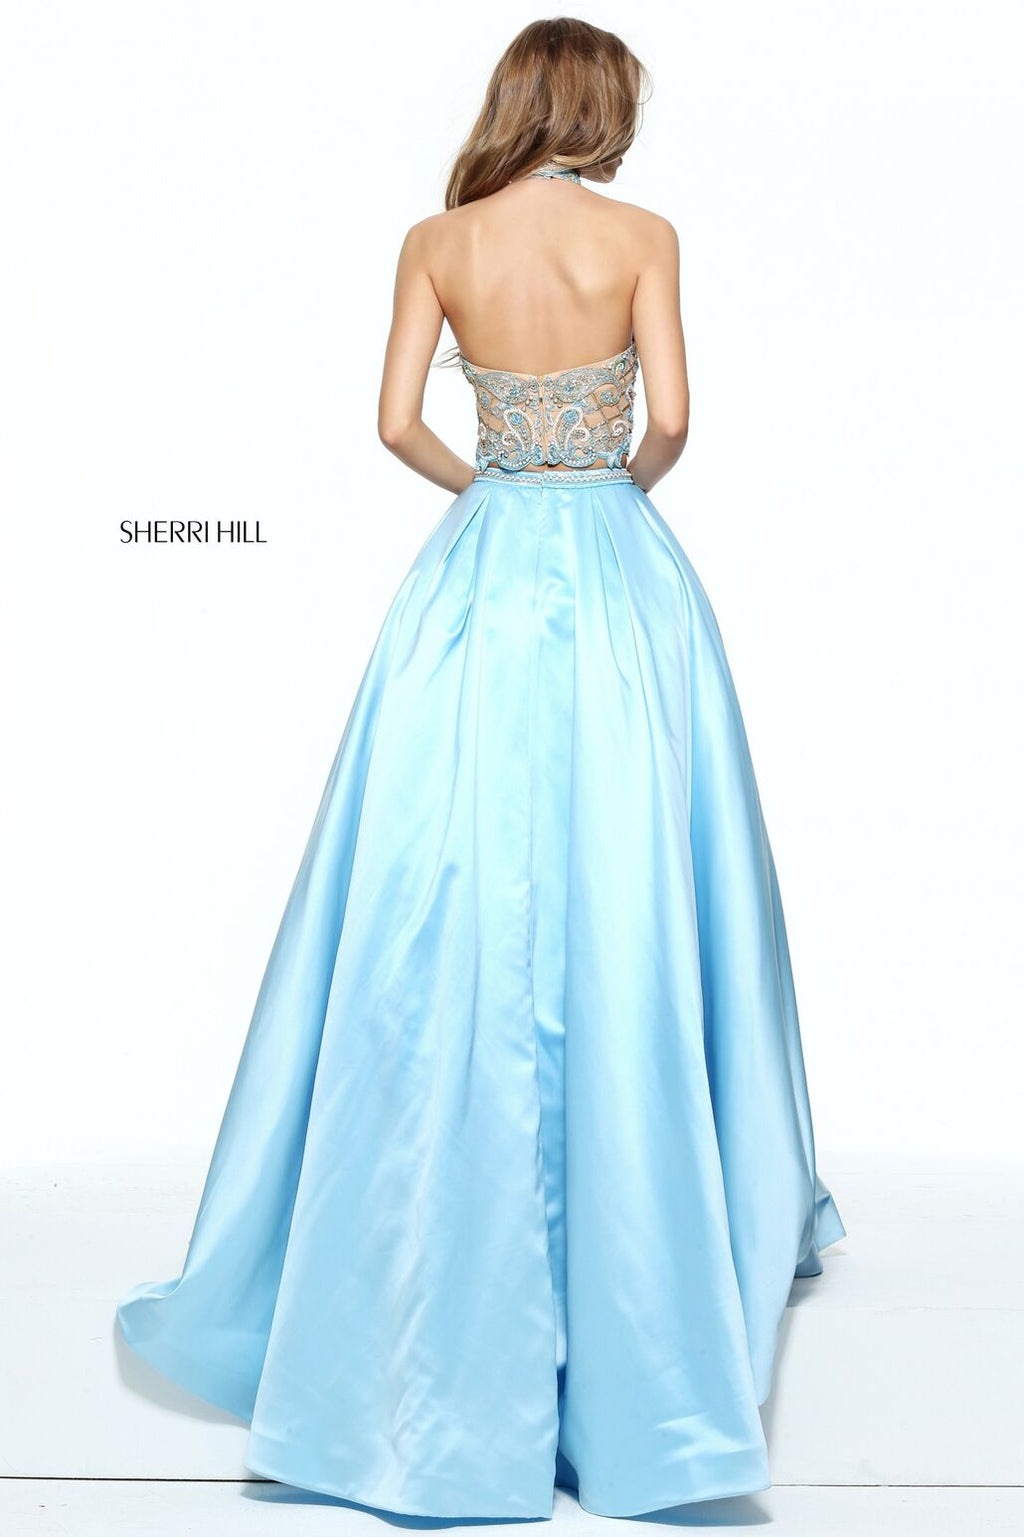 This Sherri Hill 51041 light blue two-piece ballgown has a halter and beaded bodice.